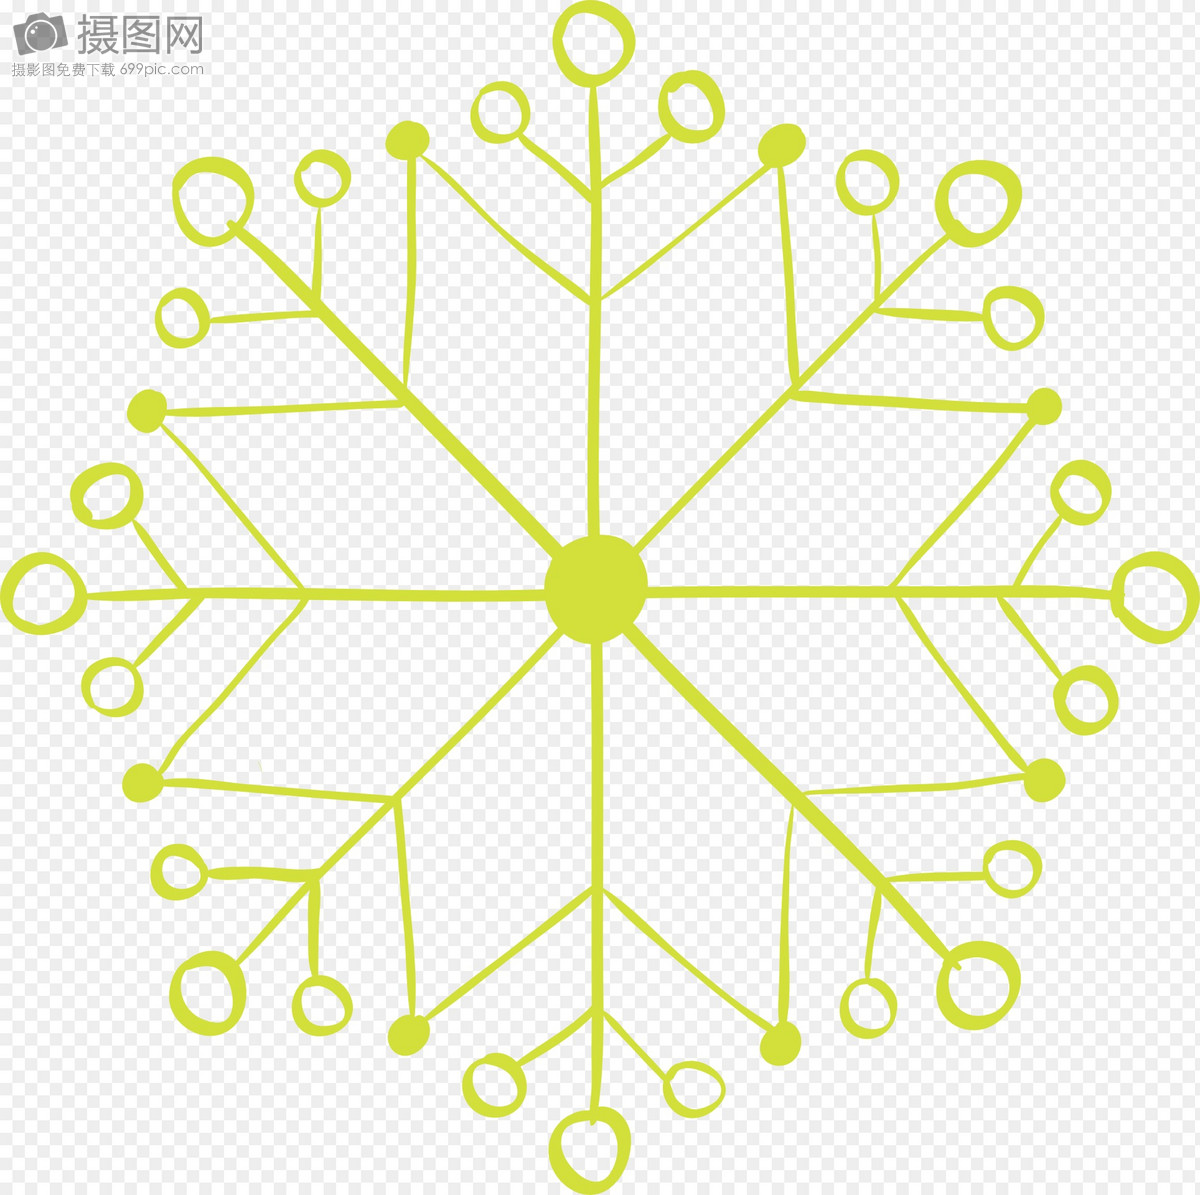 green snowflake design template images graphic elements pictures